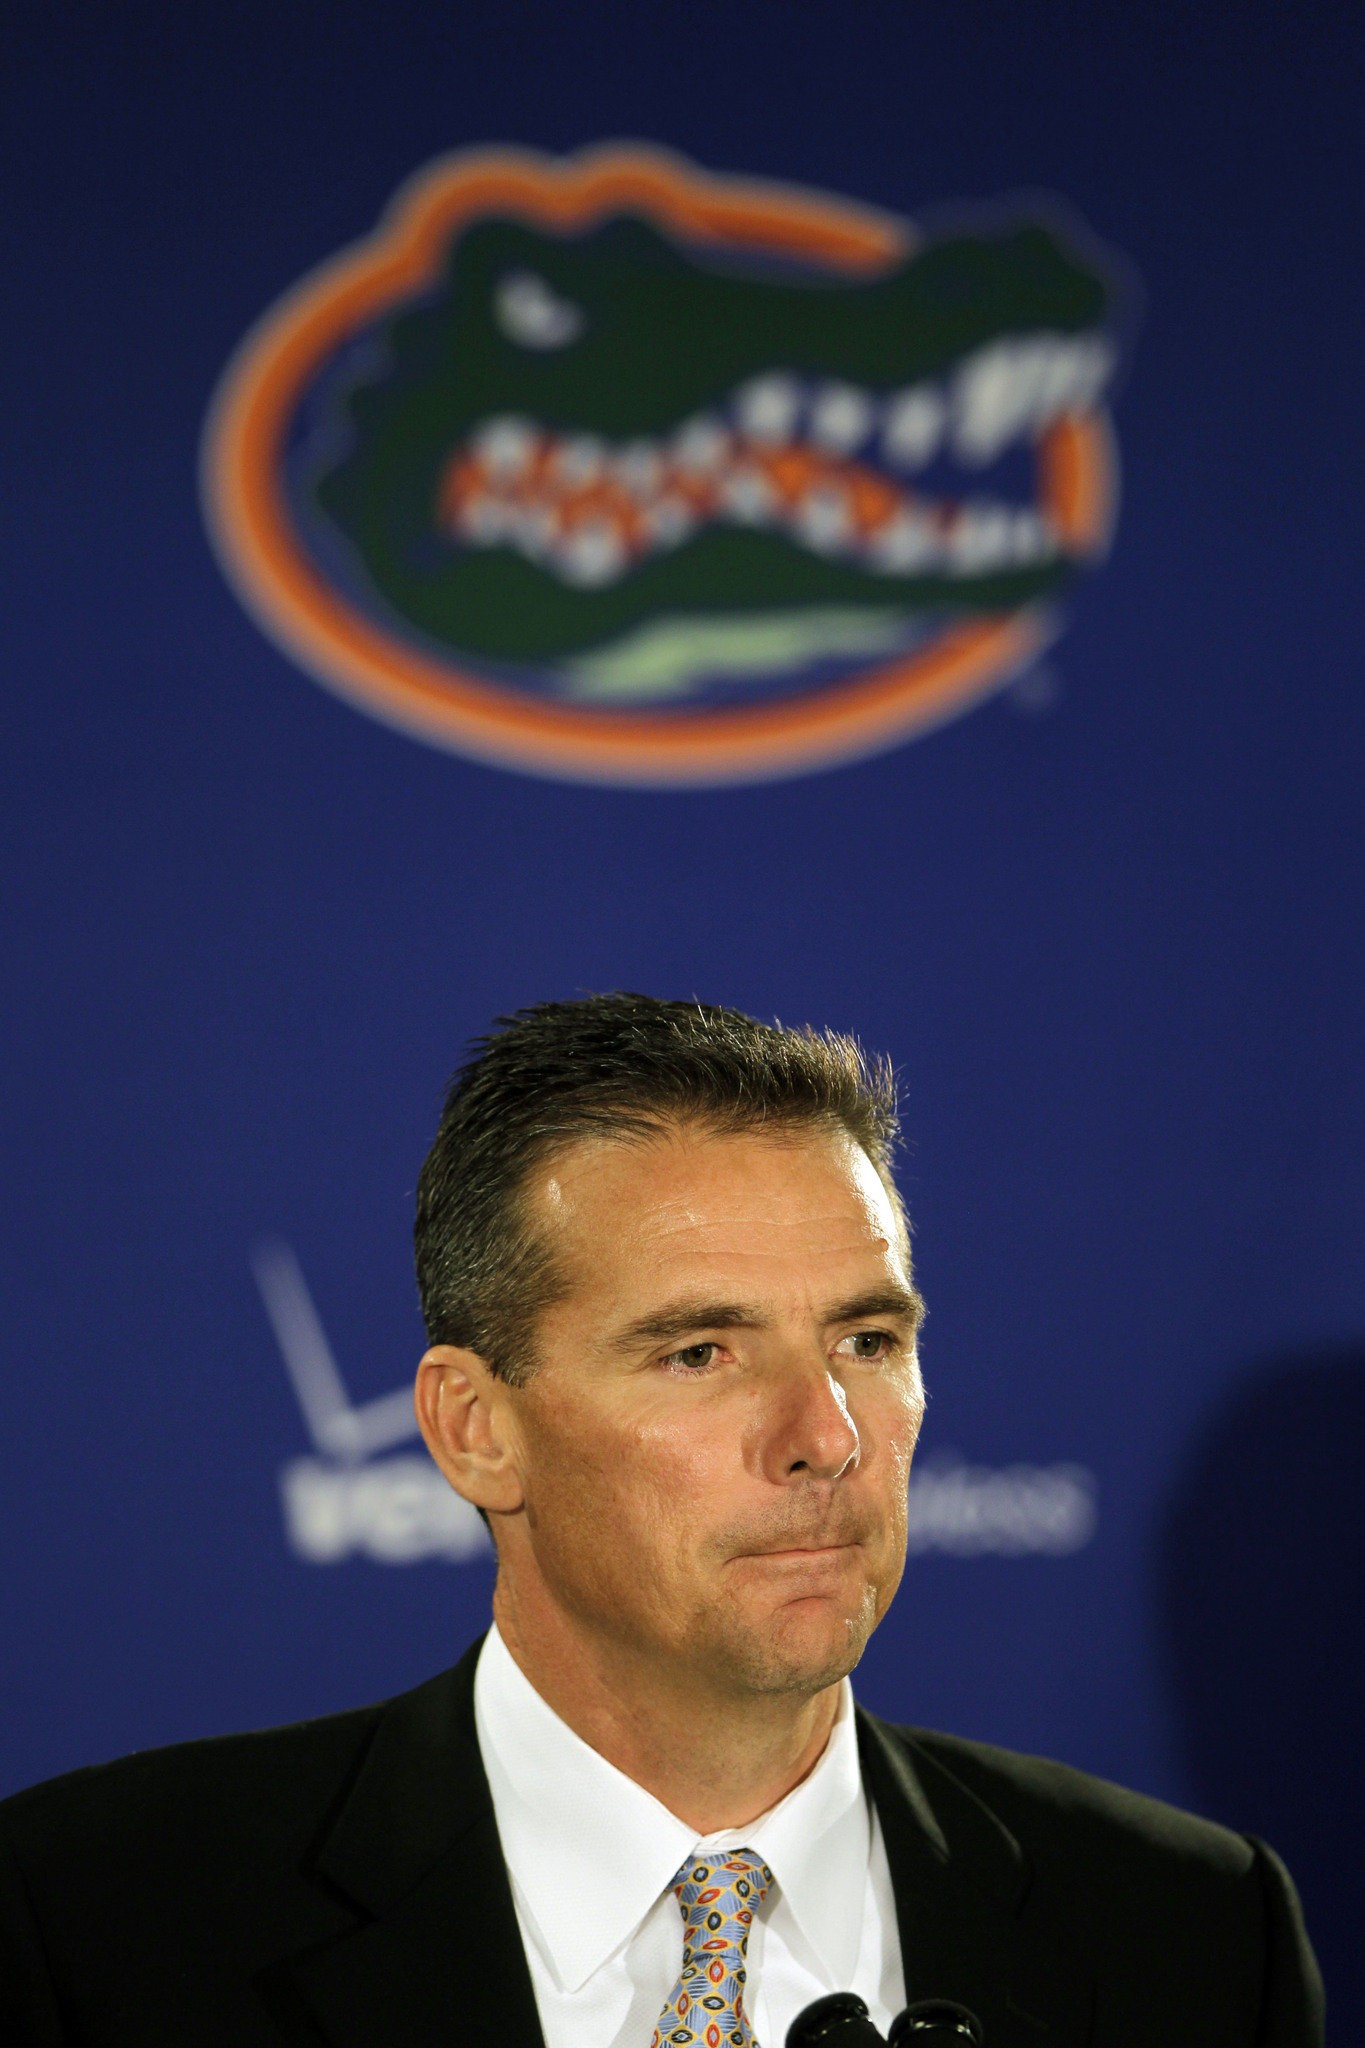 It's all about family, Urban Meyer says as he resigns as Florida